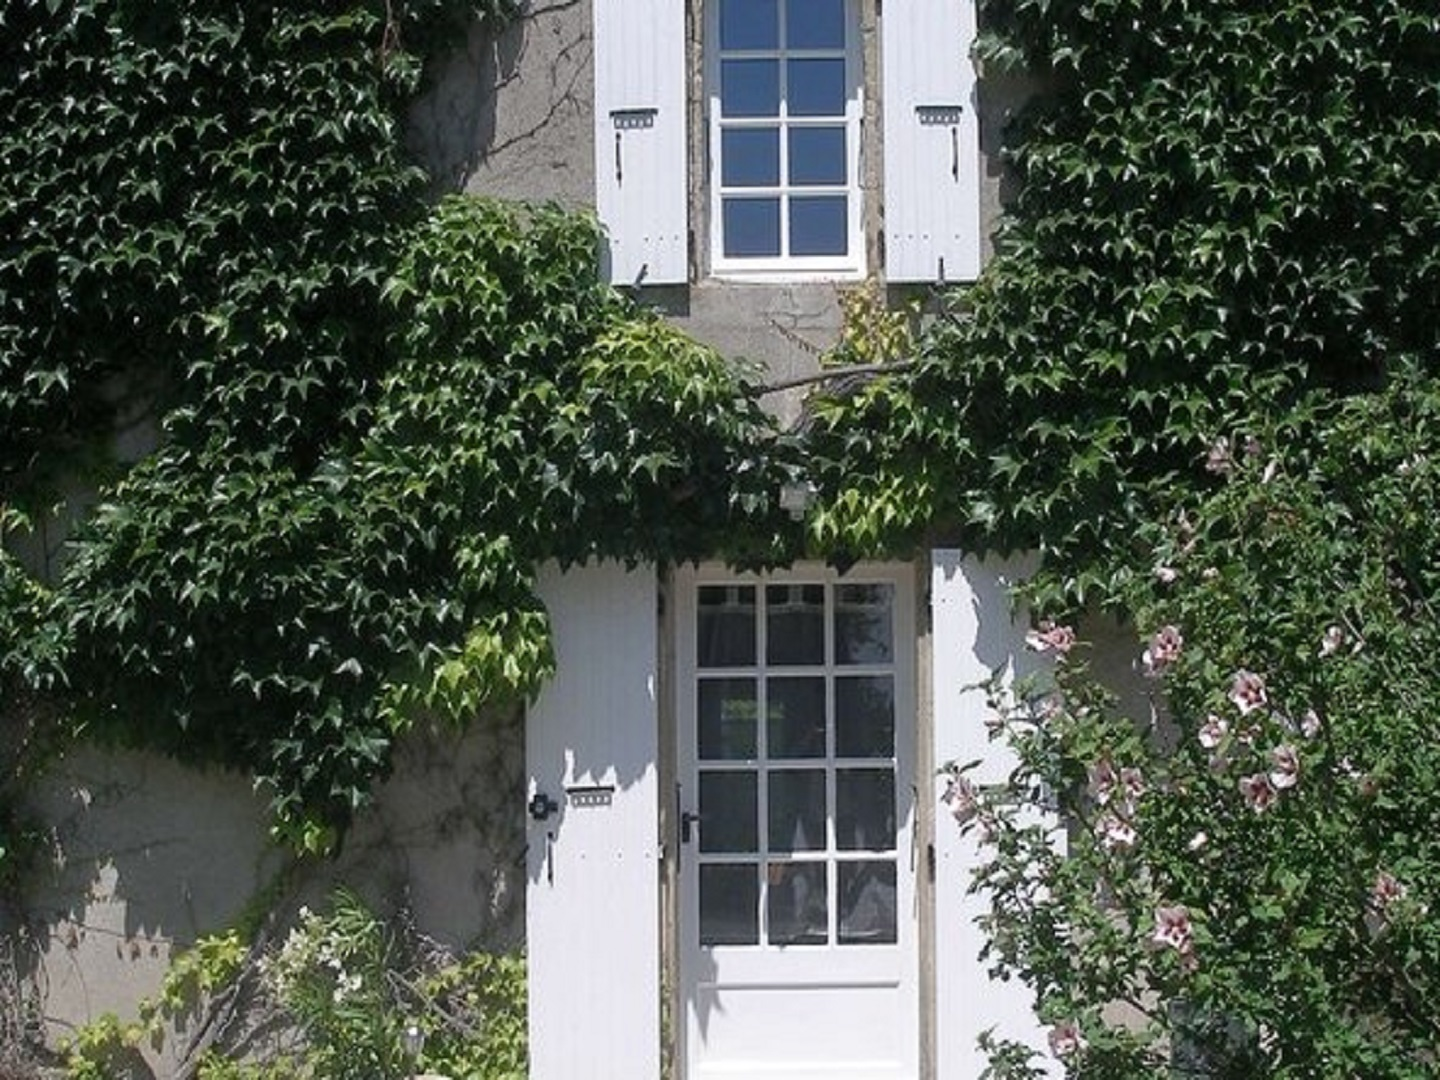 A house with bushes in front of a window at Le Mas d'Escampette.